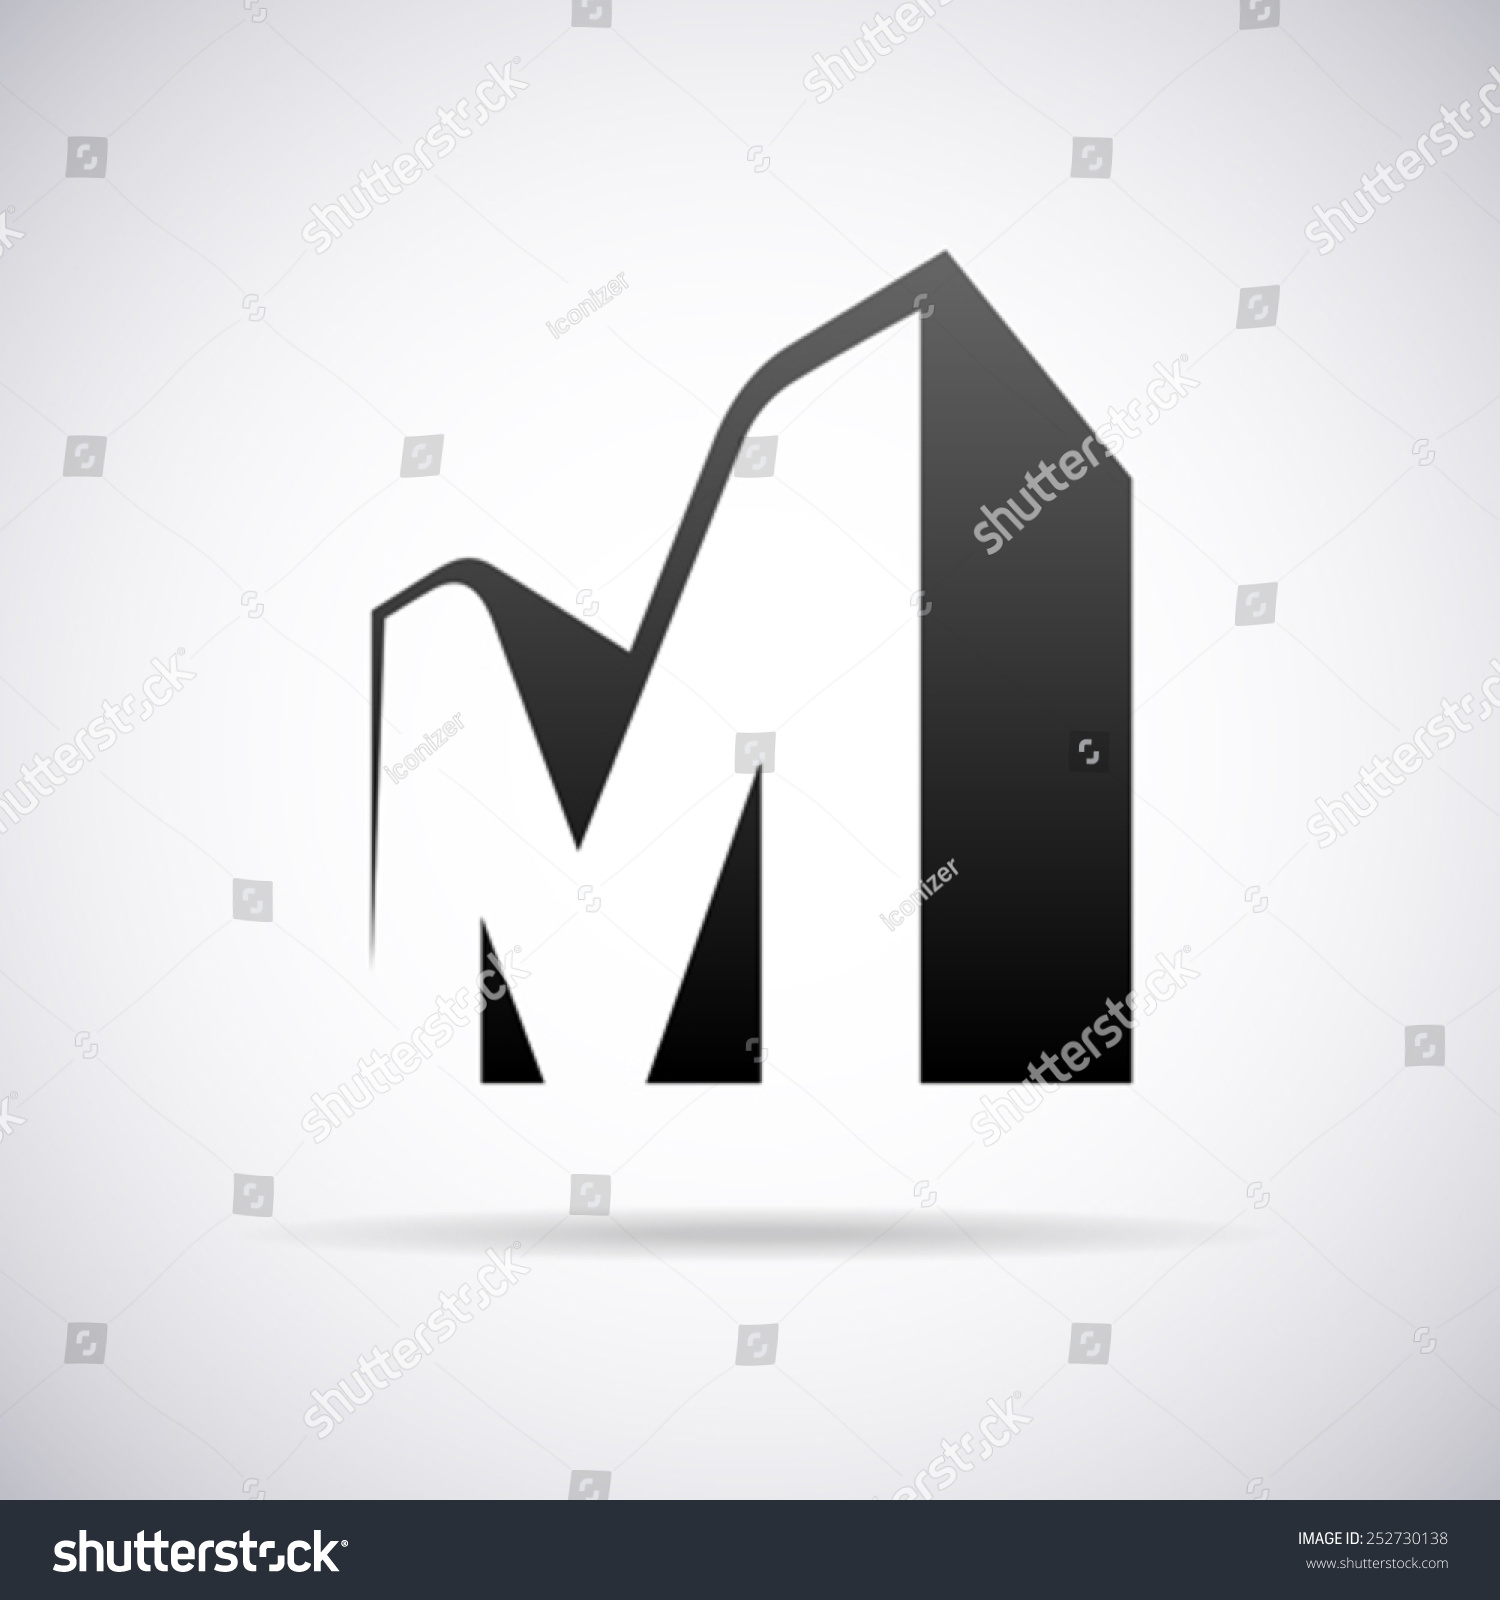 vector logo letter m design template stock vector 252730138 shutterstock. Black Bedroom Furniture Sets. Home Design Ideas